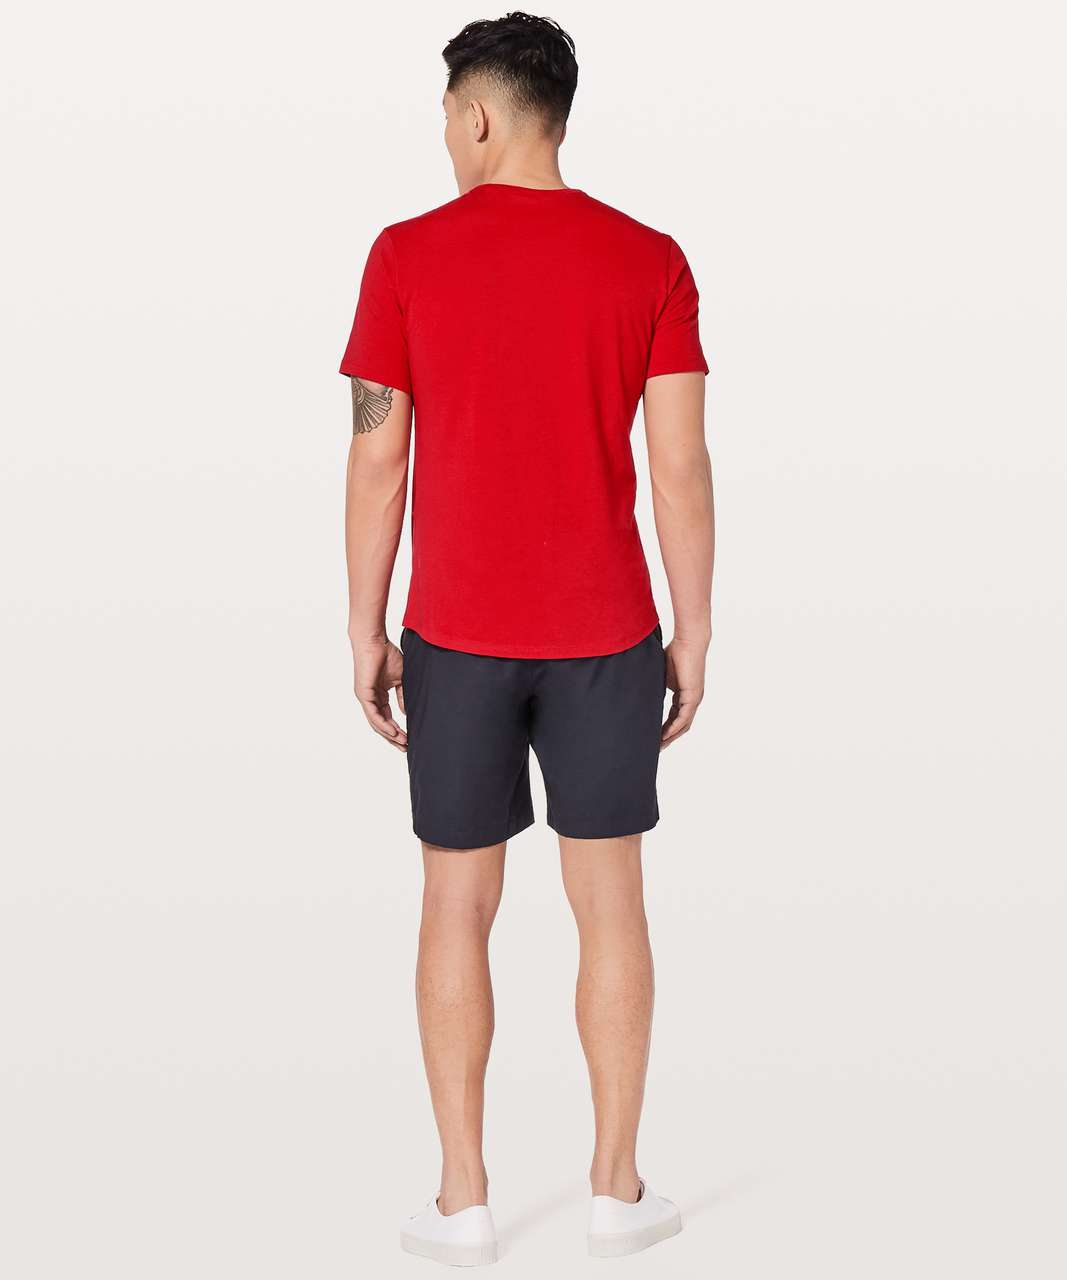 Lululemon 5 Year Basic Tee *Updated Fit - Bold Red